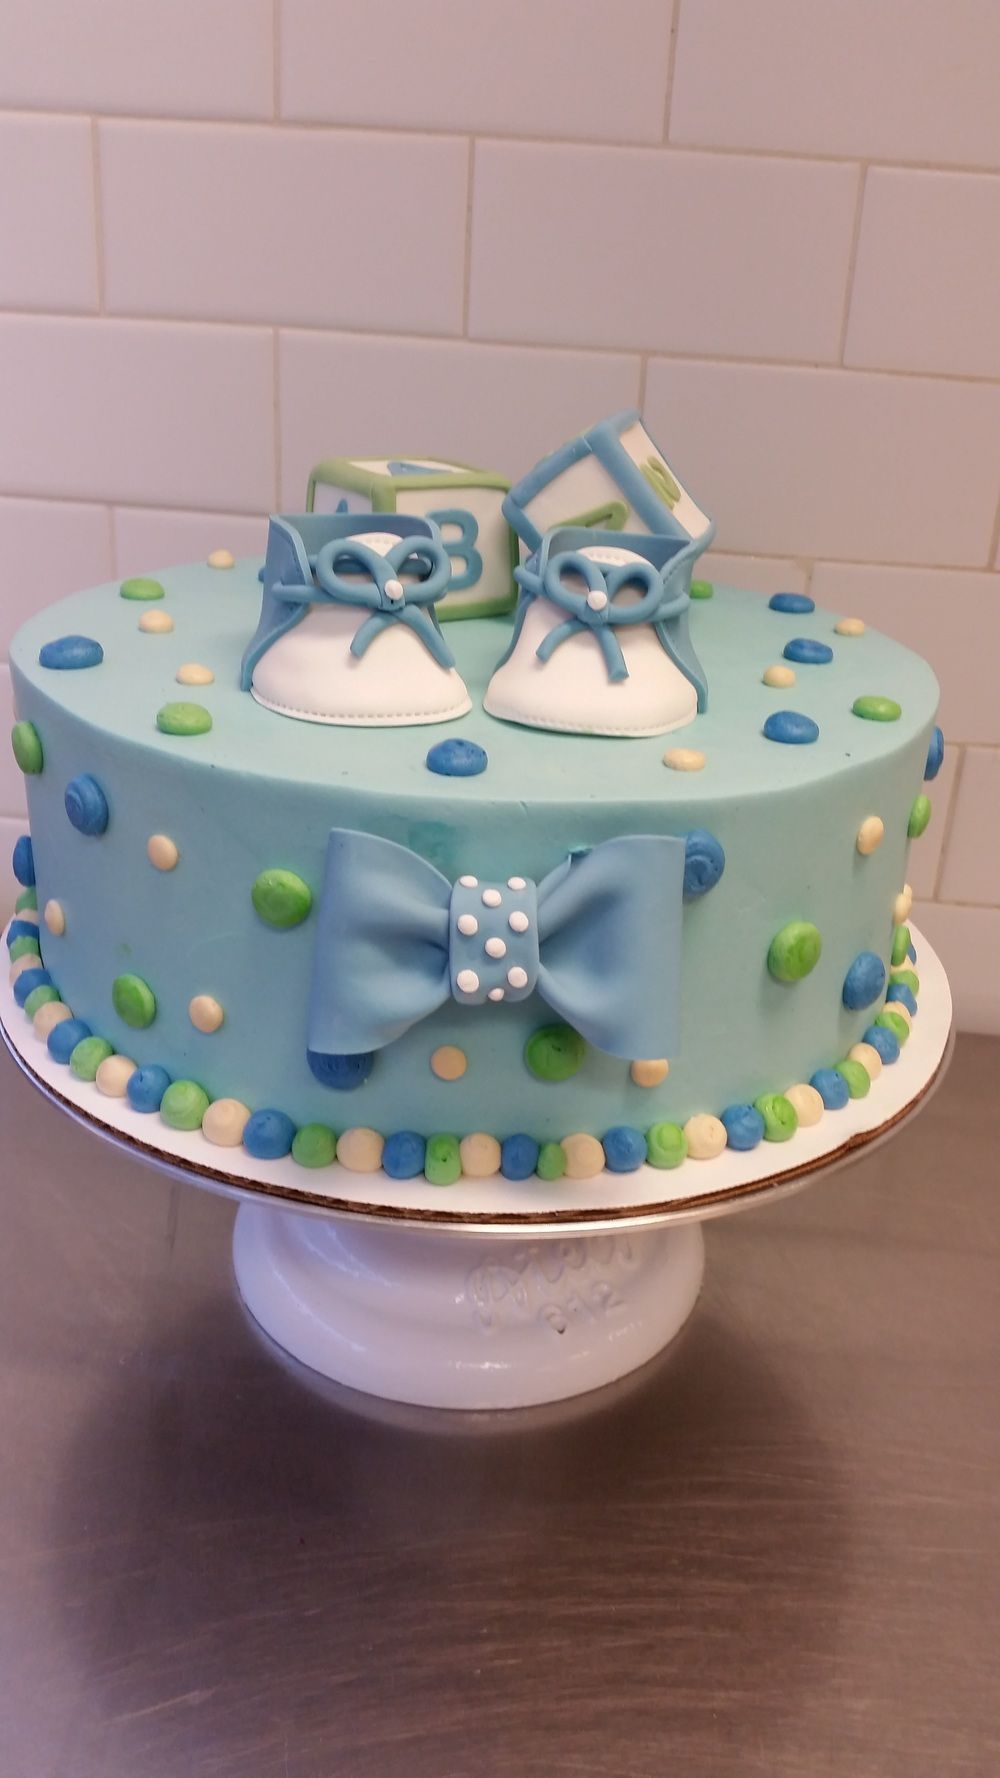 Pin By Julie Grimes On Diy Baby Shower For Boys Pinterest Baby